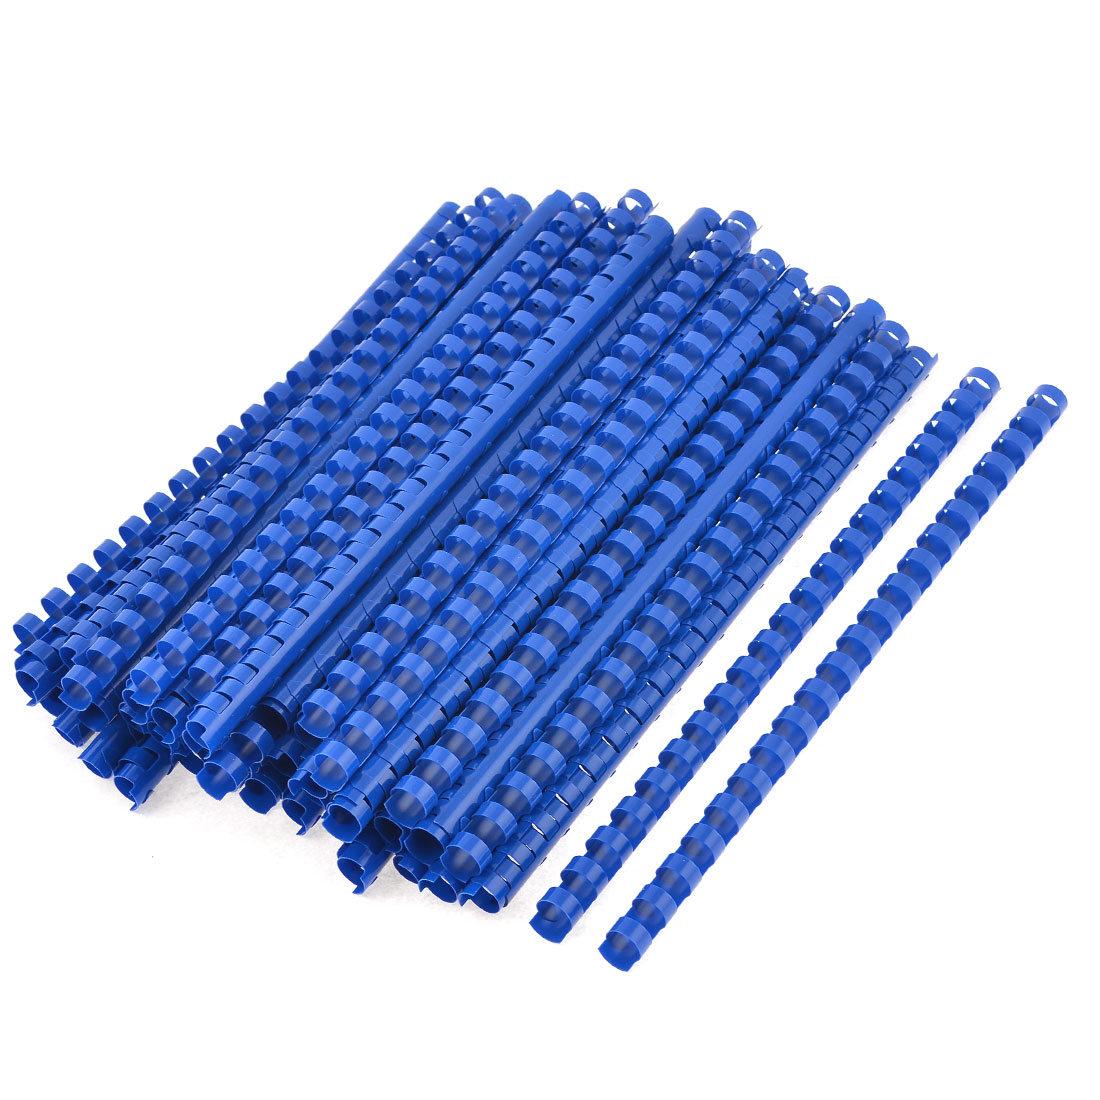 100 Pcs Office Blue Plastic 8mm Dia 21 Rings Spines Binding Combs